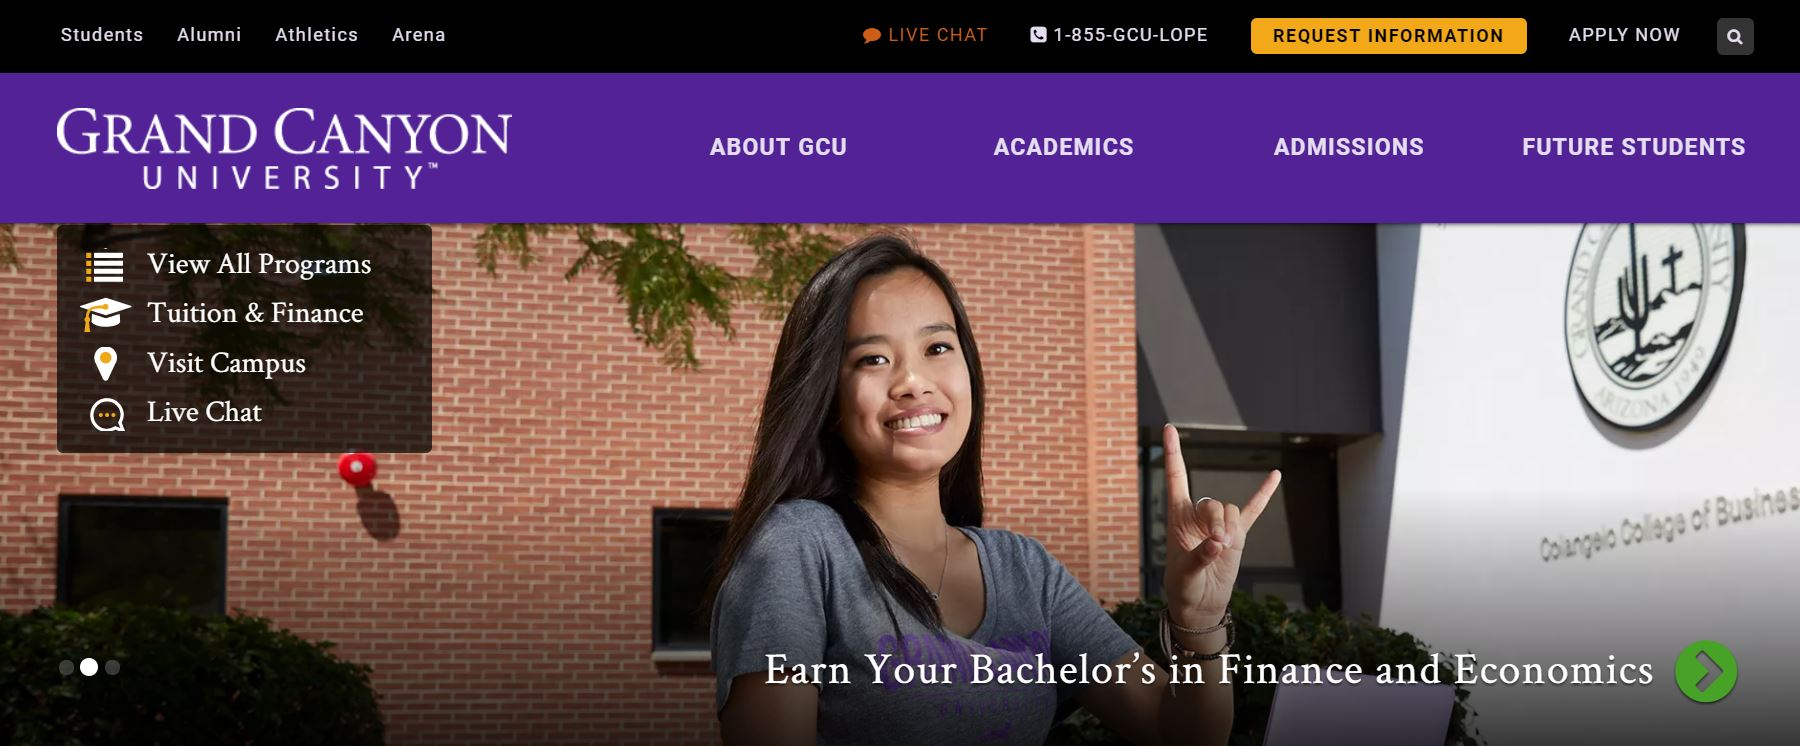 Grand Canyon University Homepage Image Of A Student In Front Of A Building. Courtesy Of Grand Canyon University